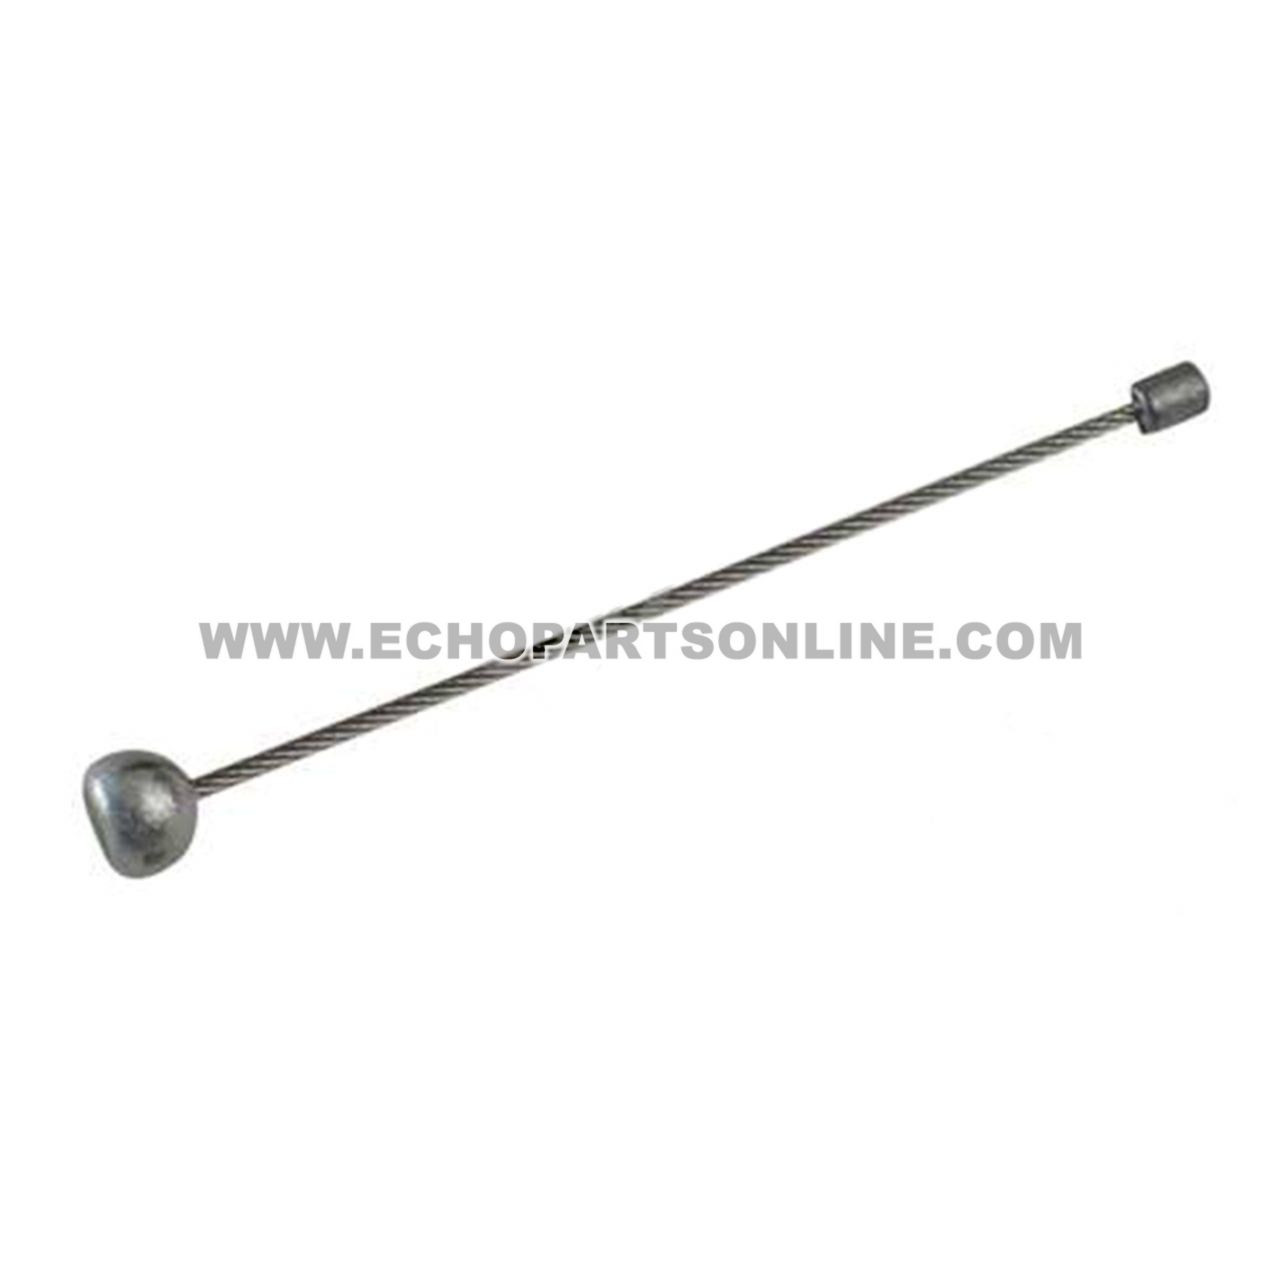 ECHO V431000000 - CABLE INNER - Image 1